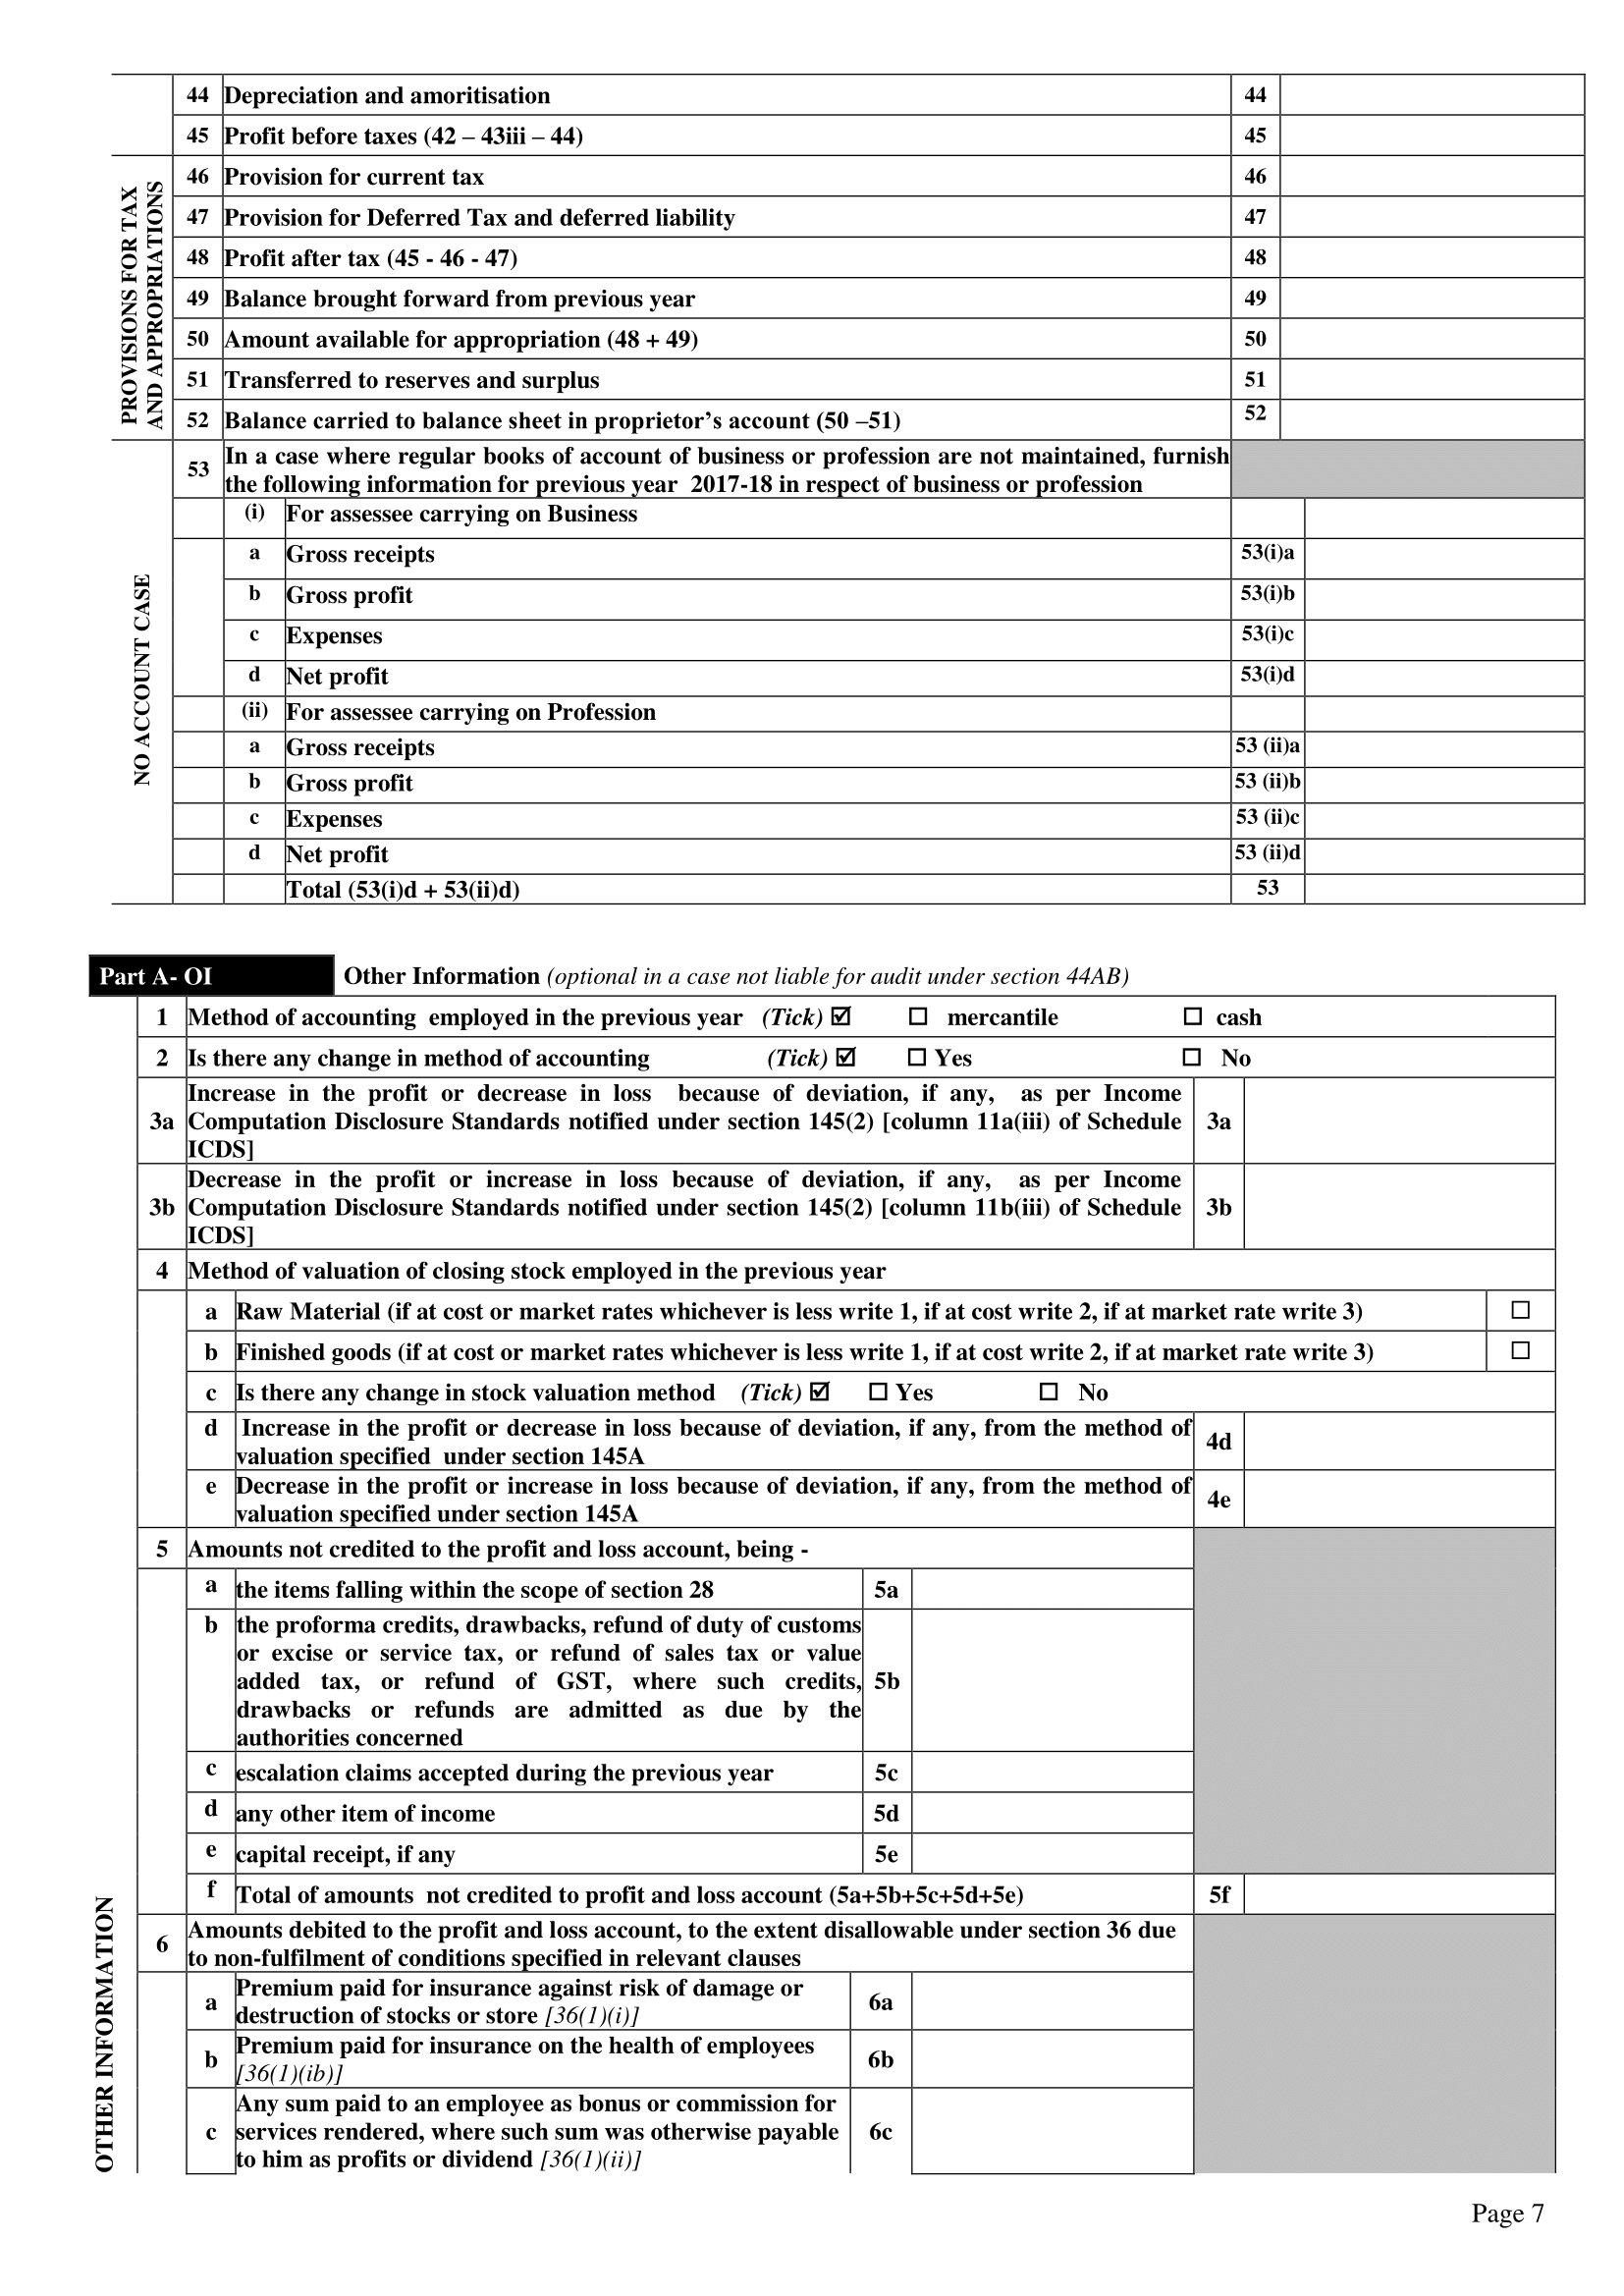 form used to file individual income tax return